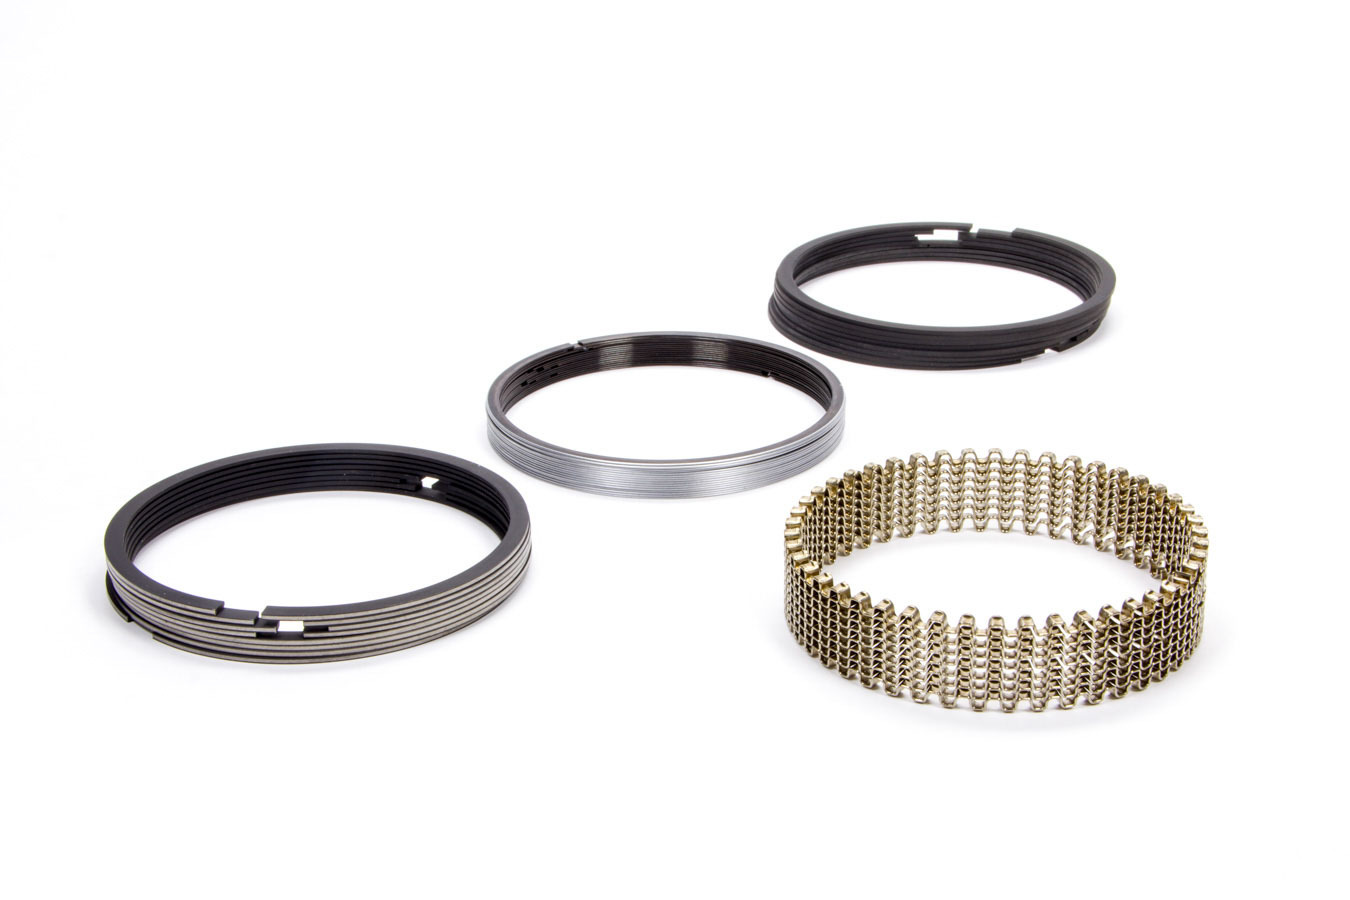 Hastings CM5532030 Piston Rings, Claimer, 4.030 in Bore, 1/16 x 1/16 x 3/16 in Thick, Standard Tension, Plasma Moly, 8 Cylinder, Kit